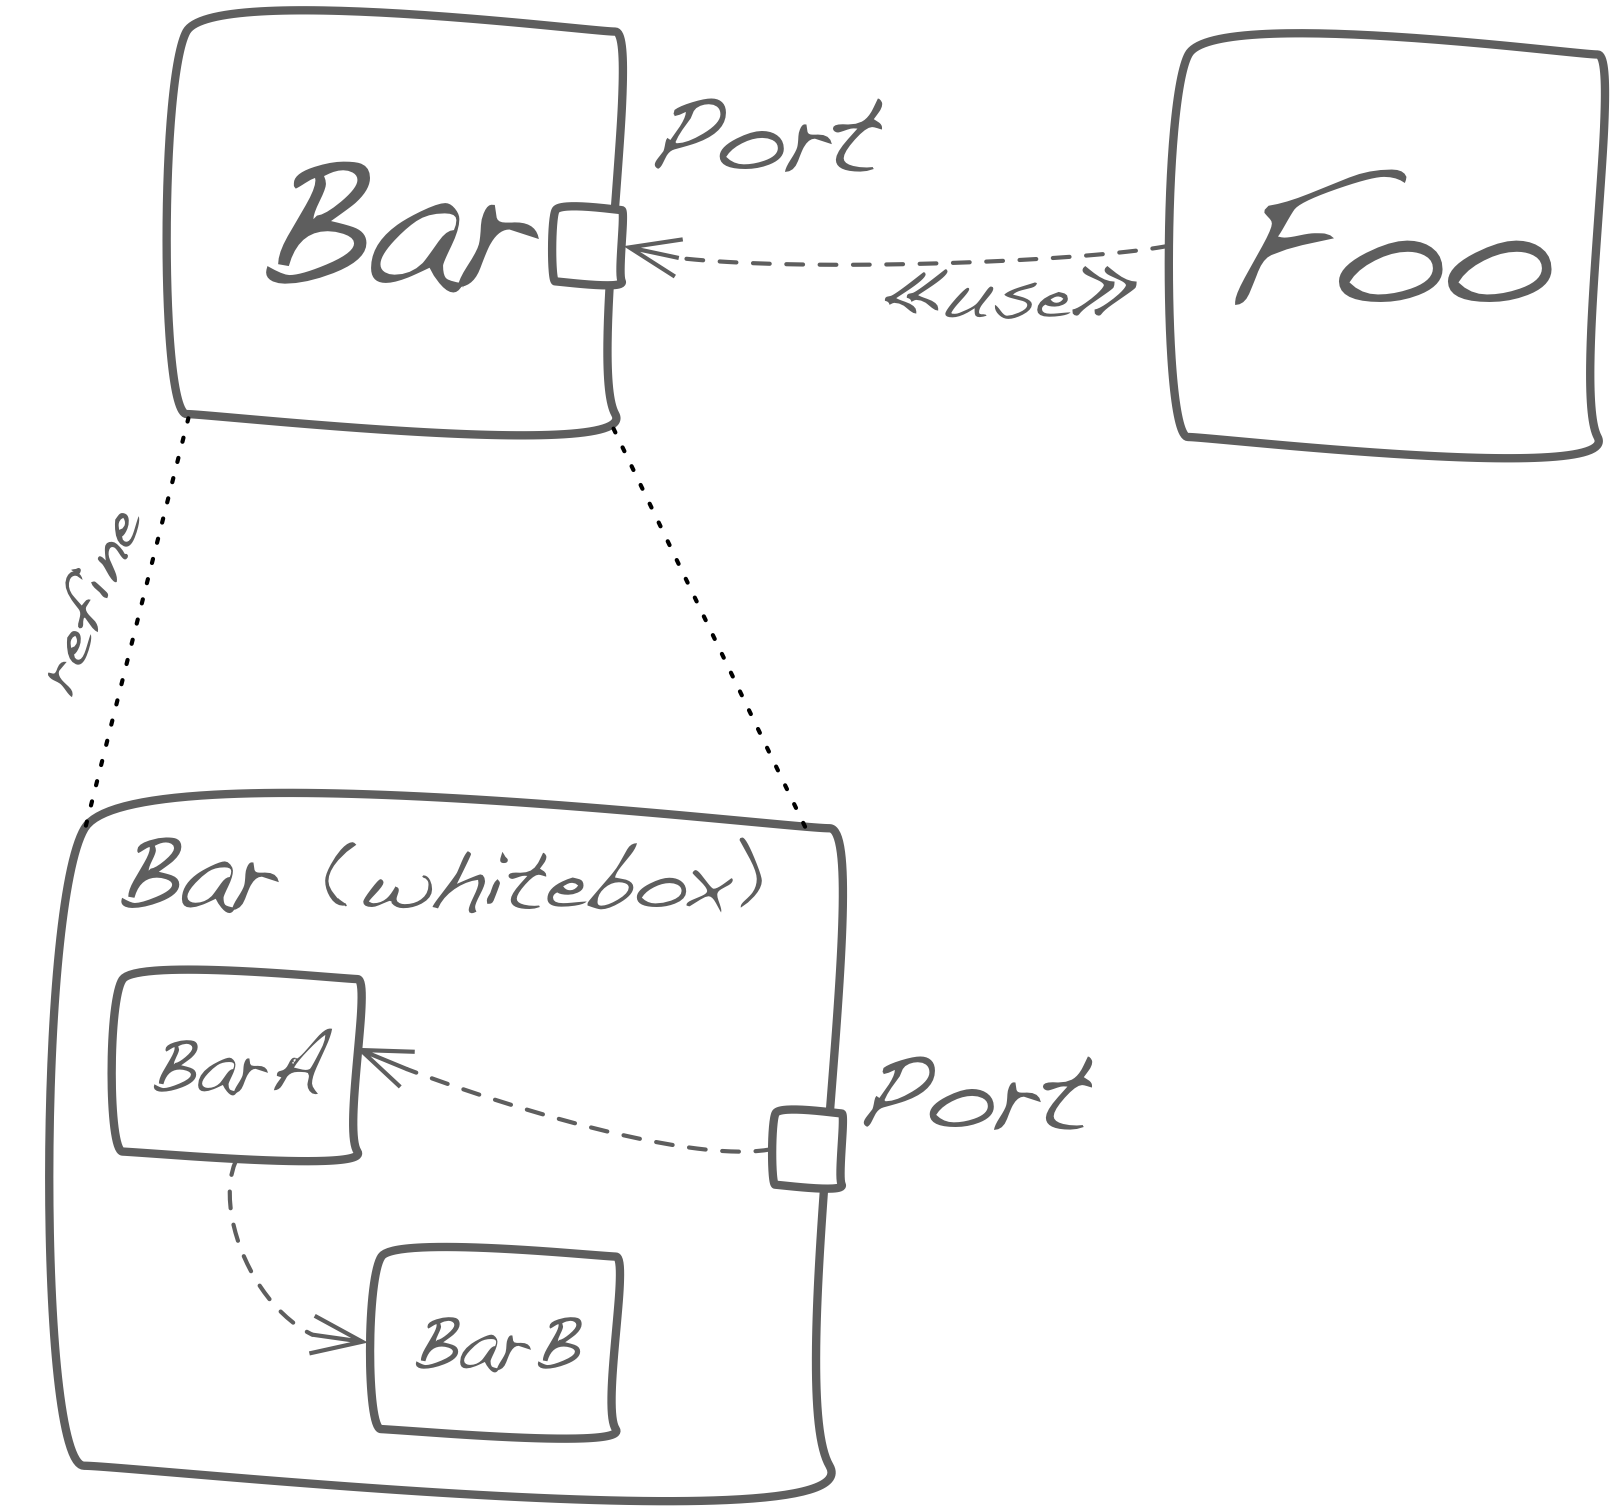 Ports to show mapping between blackbox and its refinement